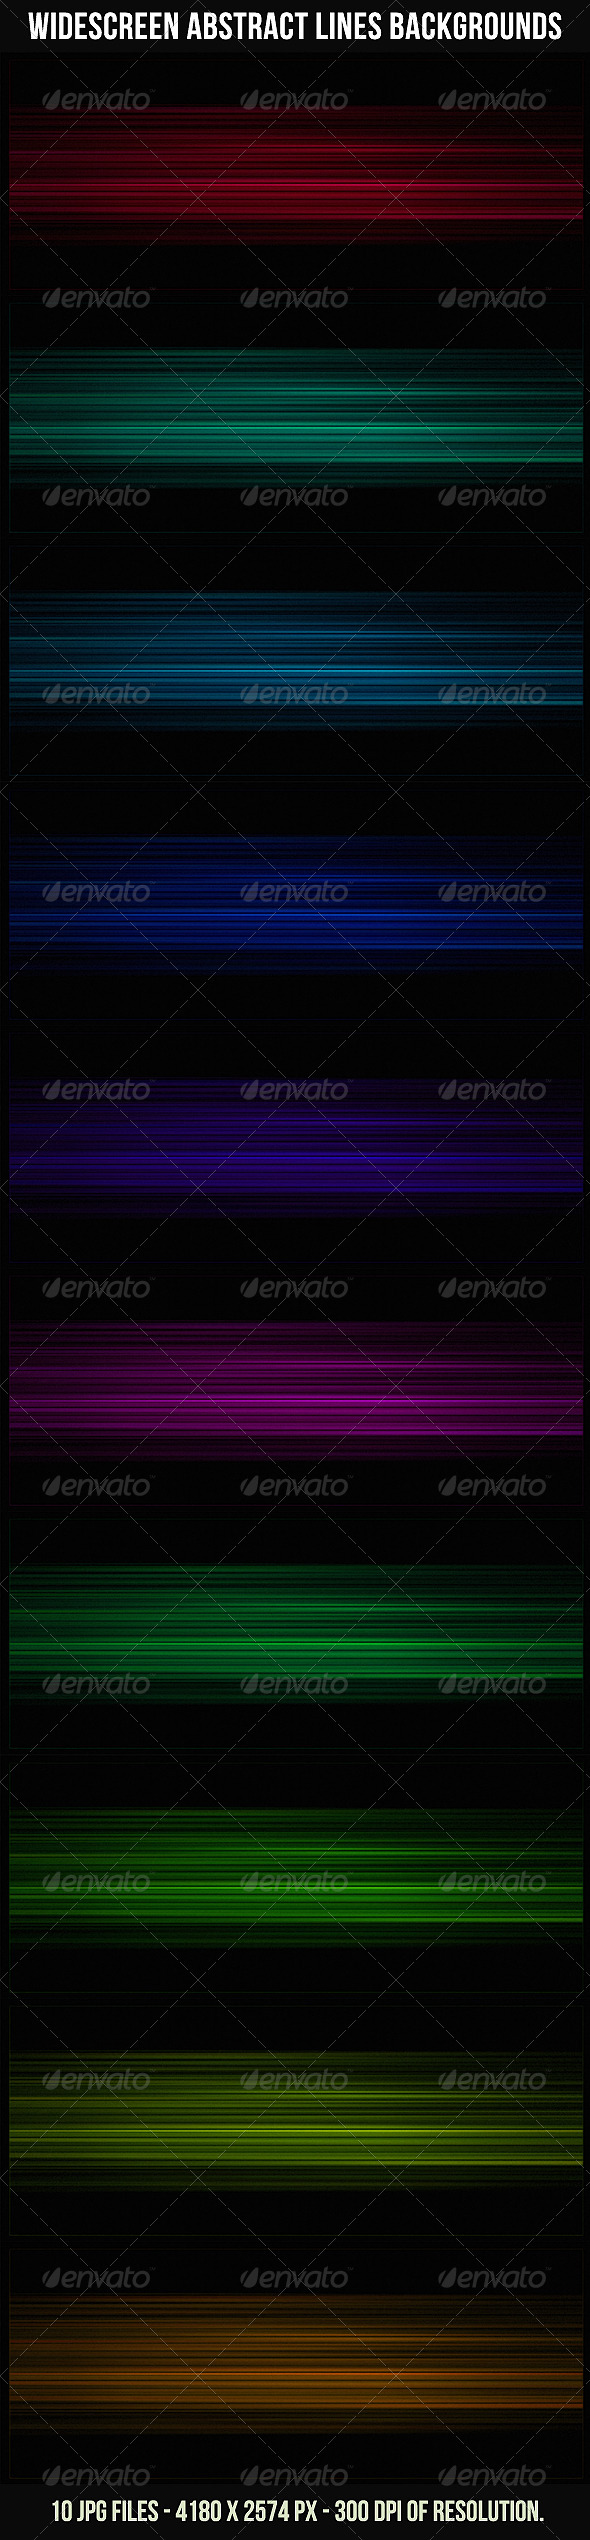 GraphicRiver Widescreen Abstract Lines Backgrounds 4083208